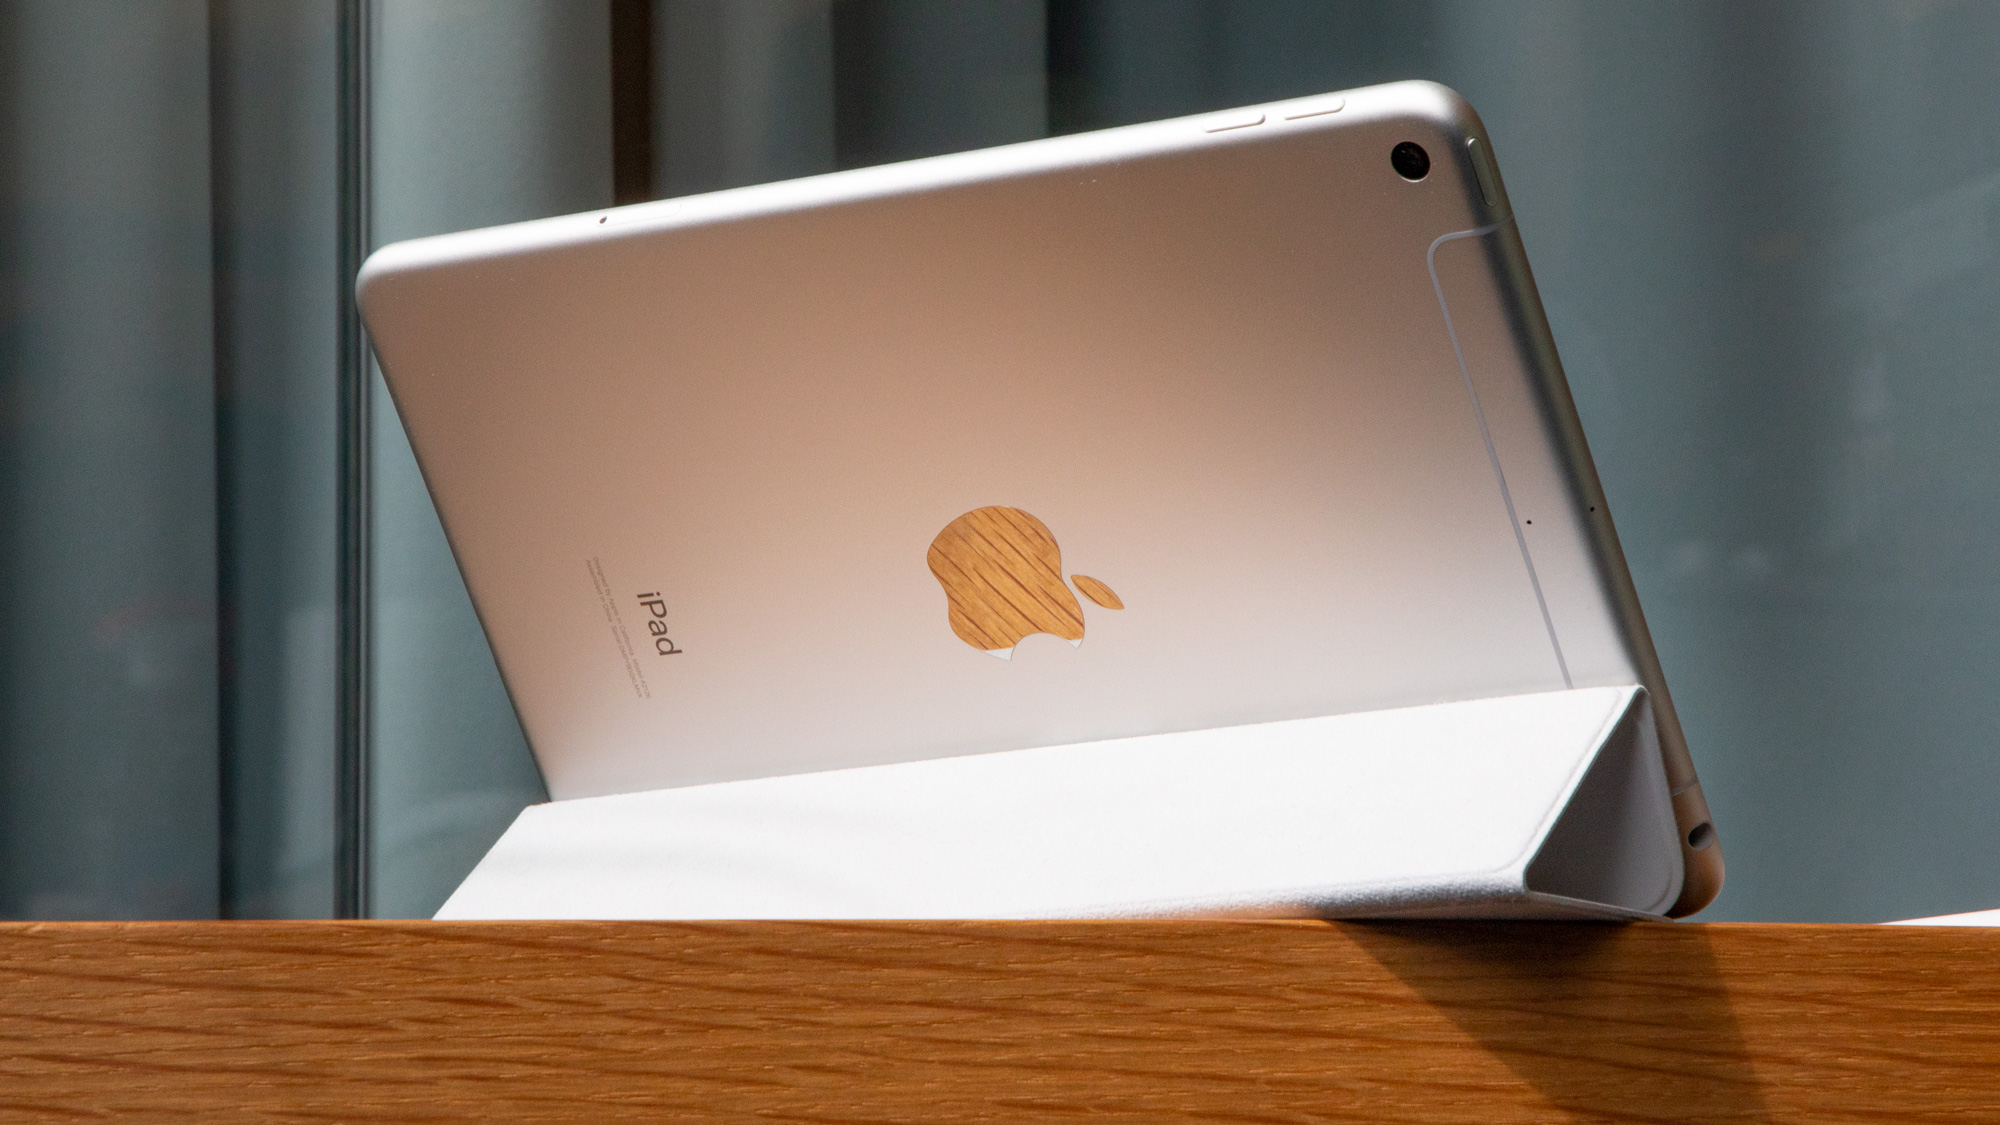 An iPad mini (2019) from the back on a wooden surface